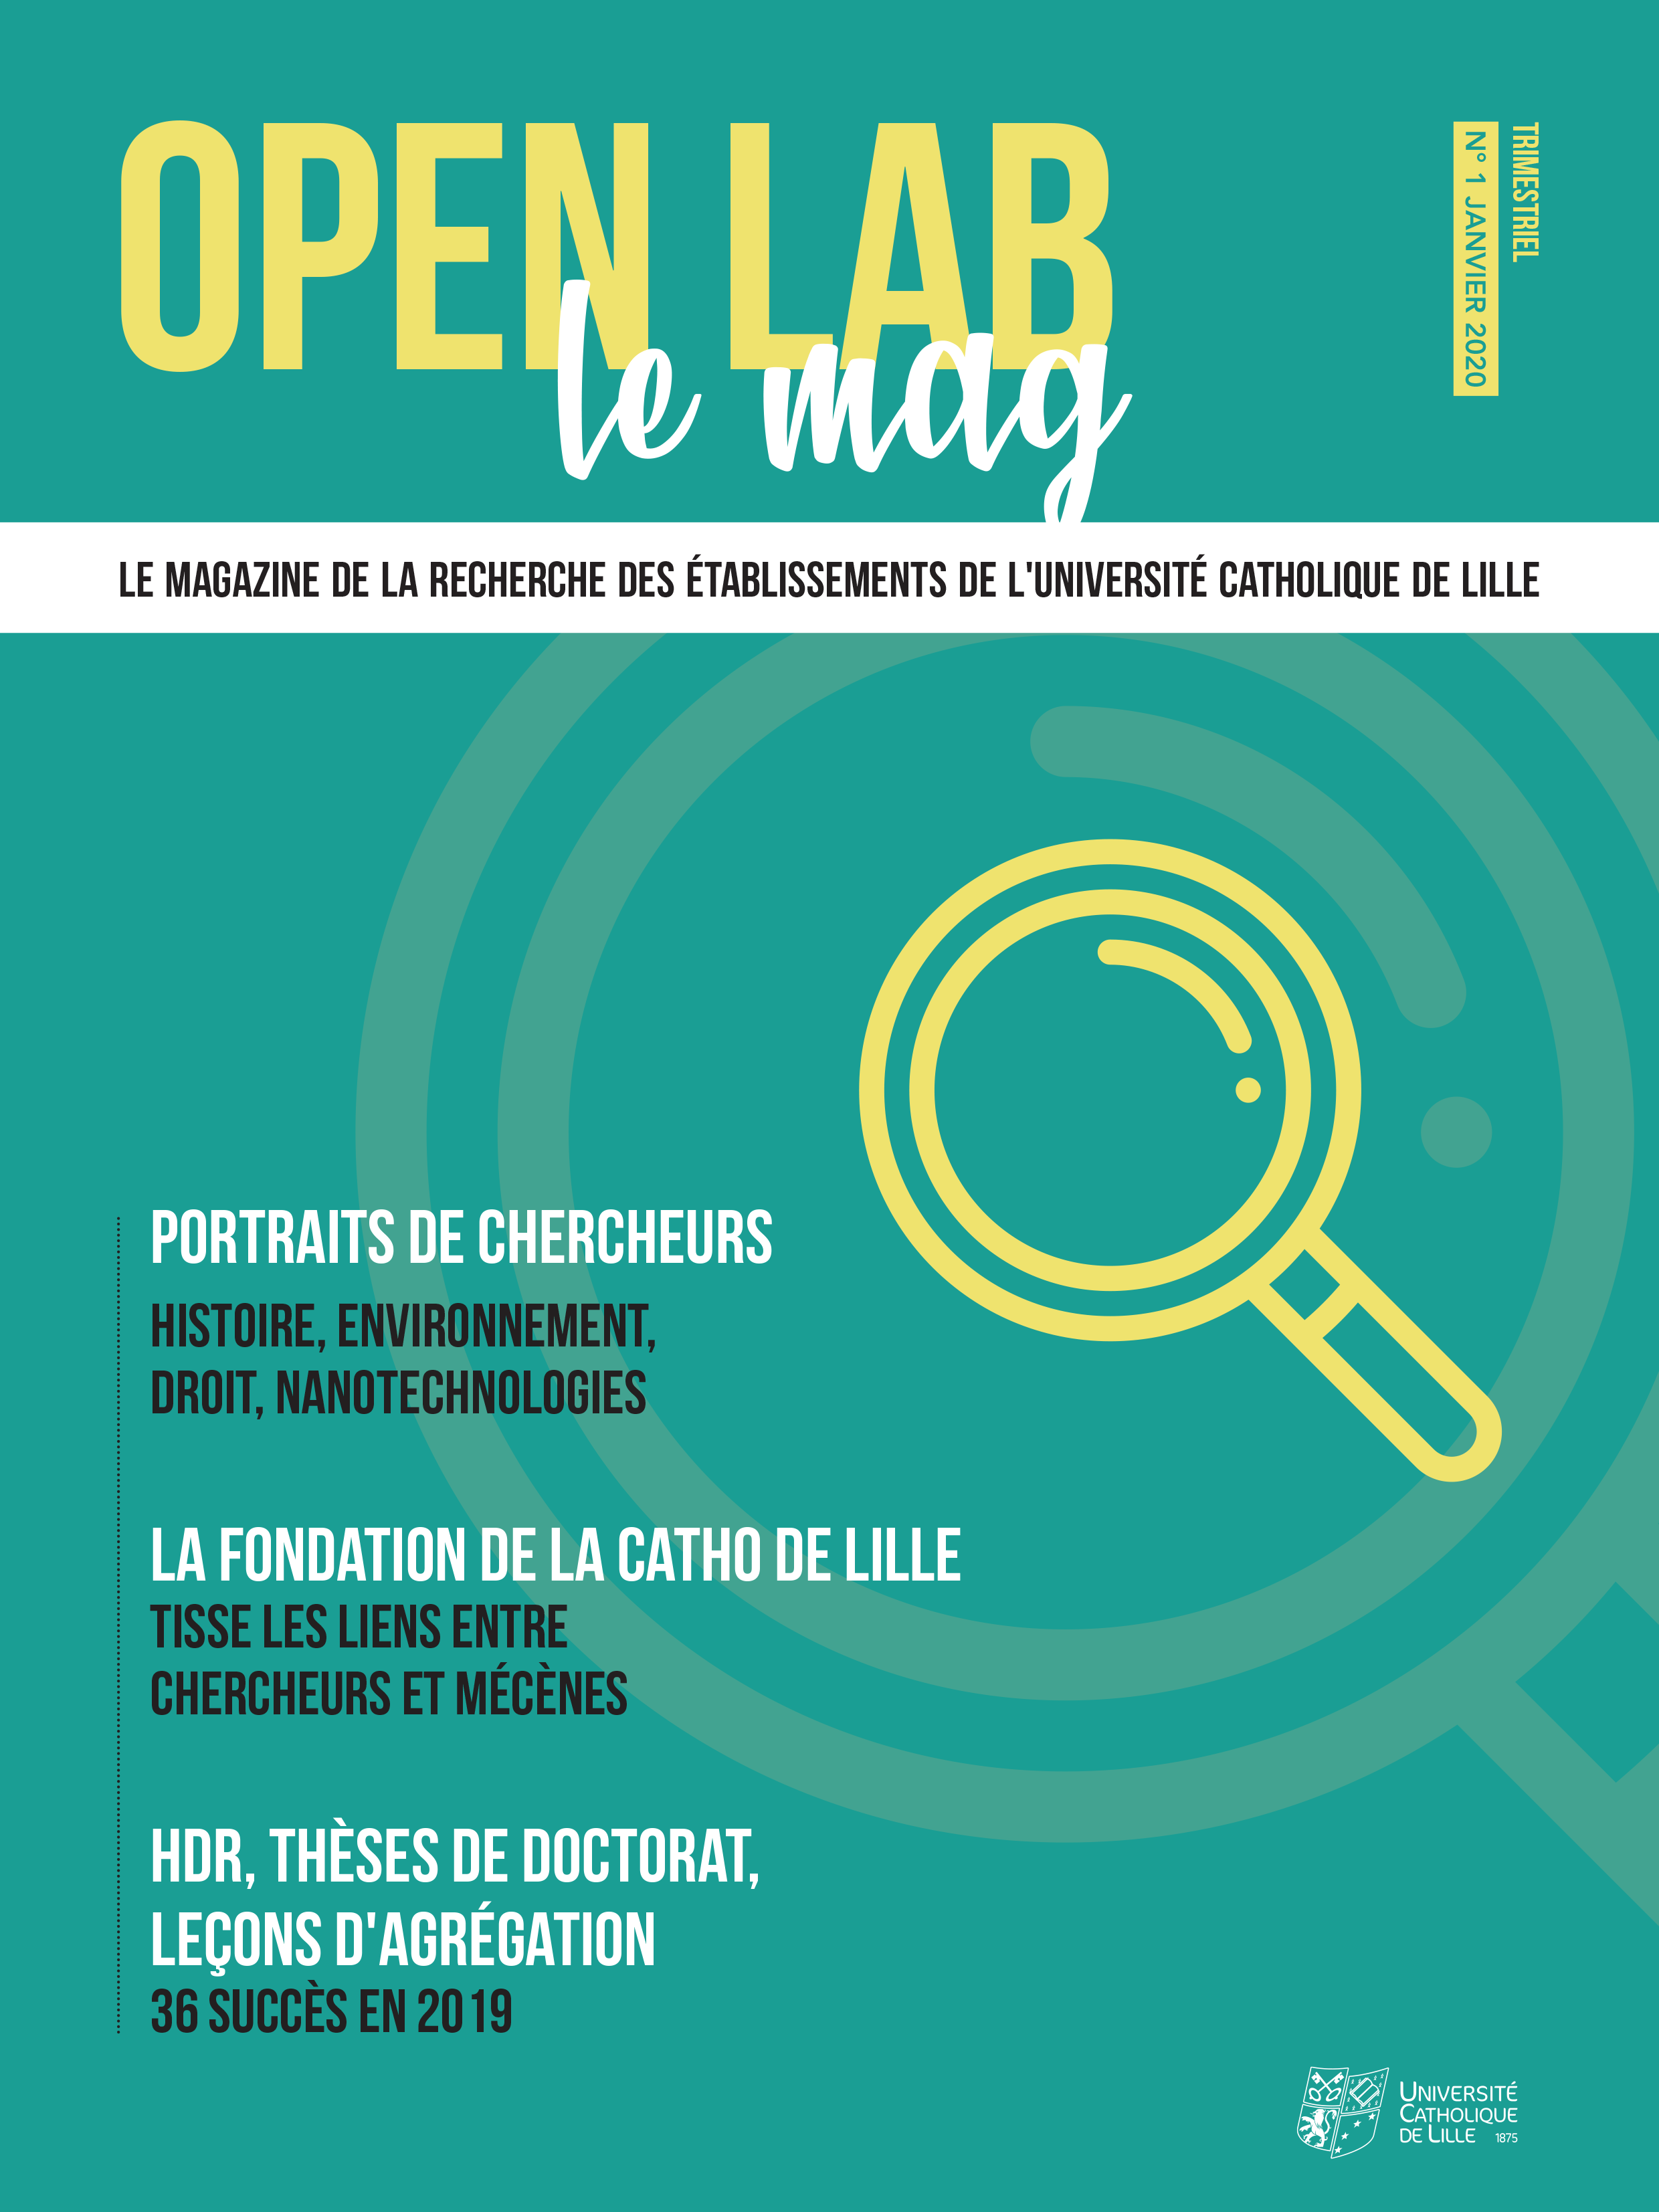 openlab le mag